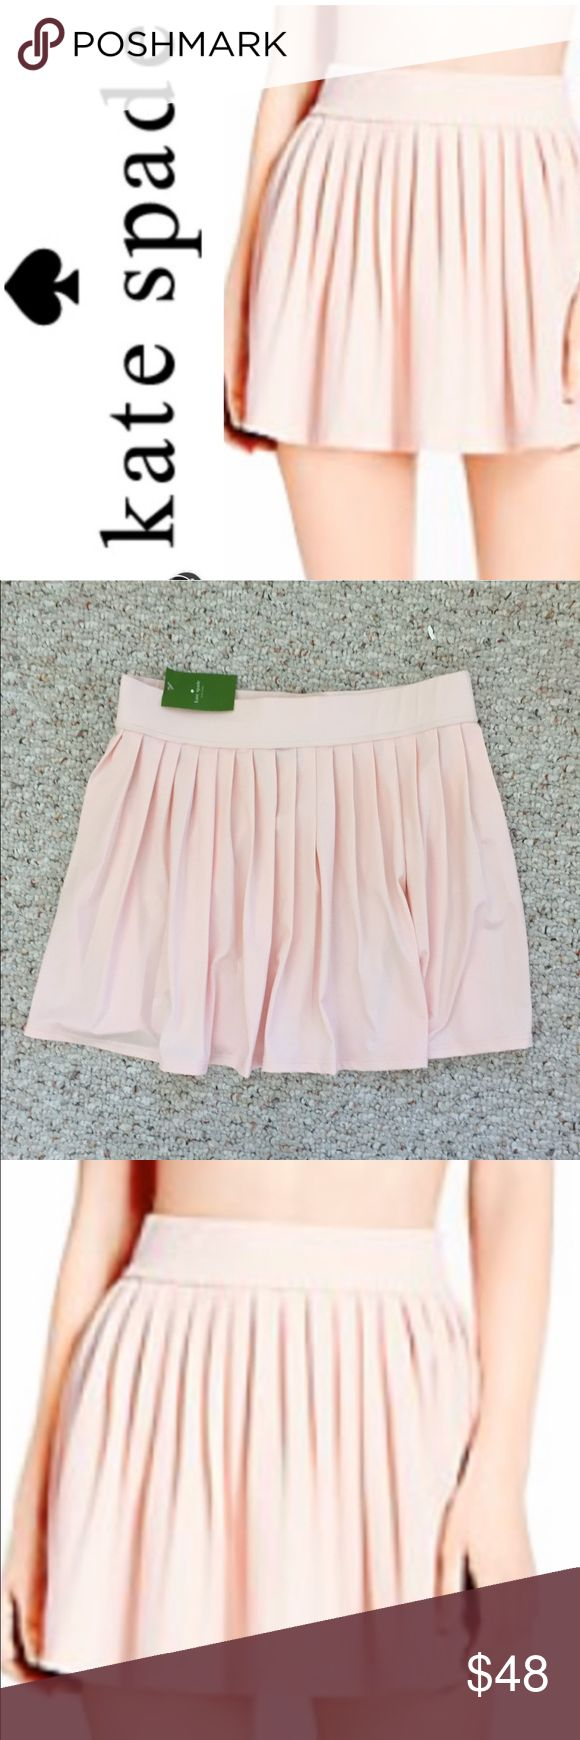 NWT Kate Spade Pleated Swim Skirt Cover Up NWT Kate Spade Georgica Pink Pleated Swim Skirt is perfect for the pool or beach. This whimsical Skirt features an elastic waist with pleats. Just adorable. L fits 8/10. kate spade Swim Coverups